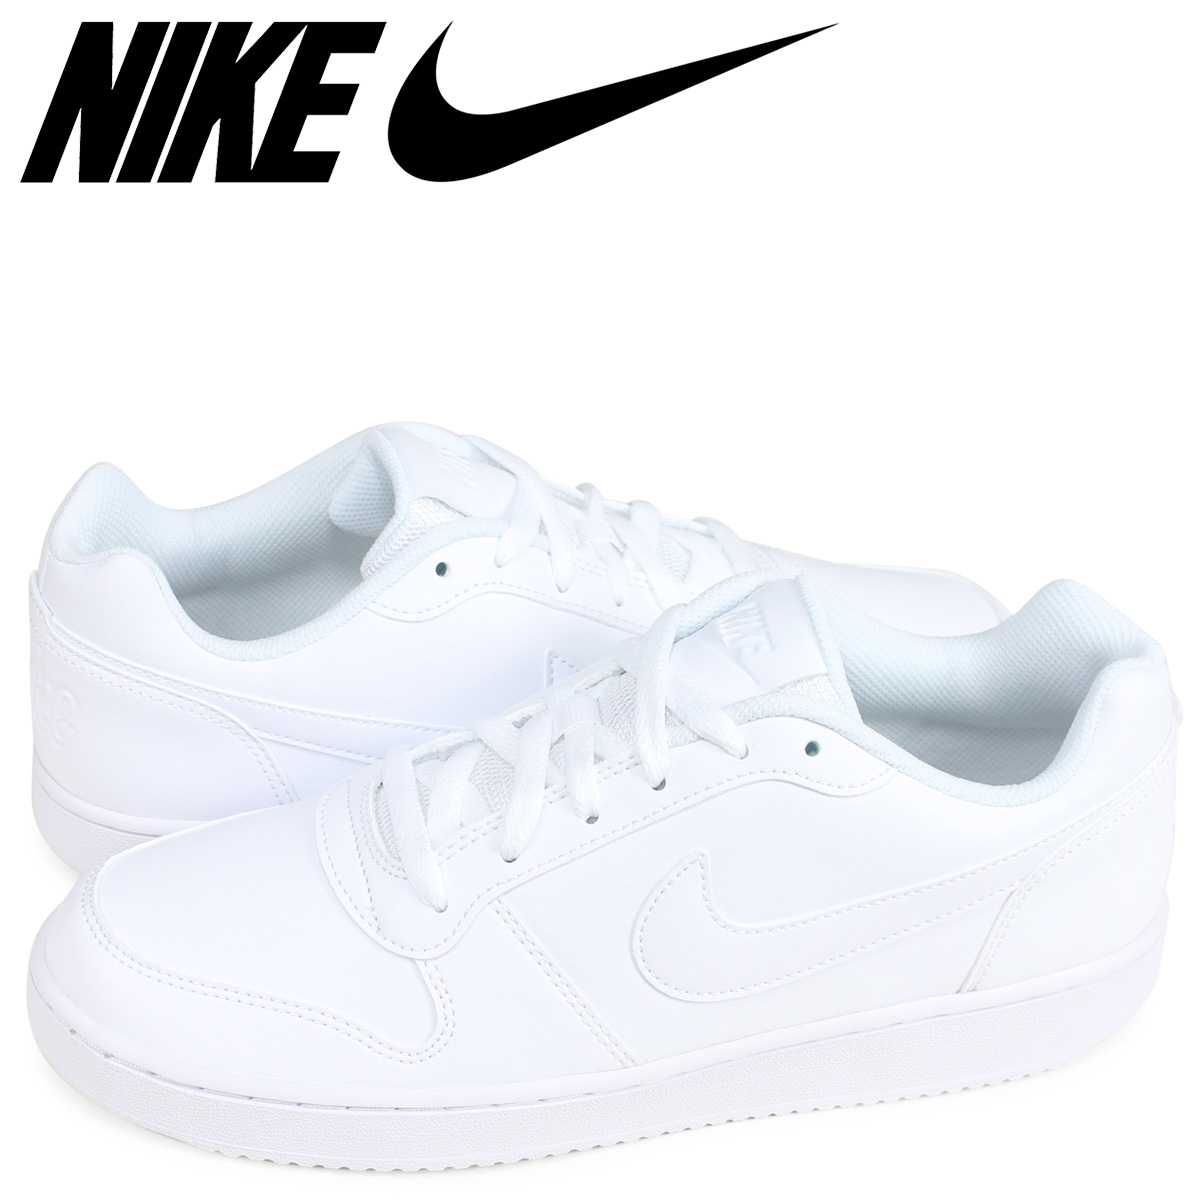 NIKE EBERNON LOW SL Kie Ney Banon sneakers men white AQ1776 100